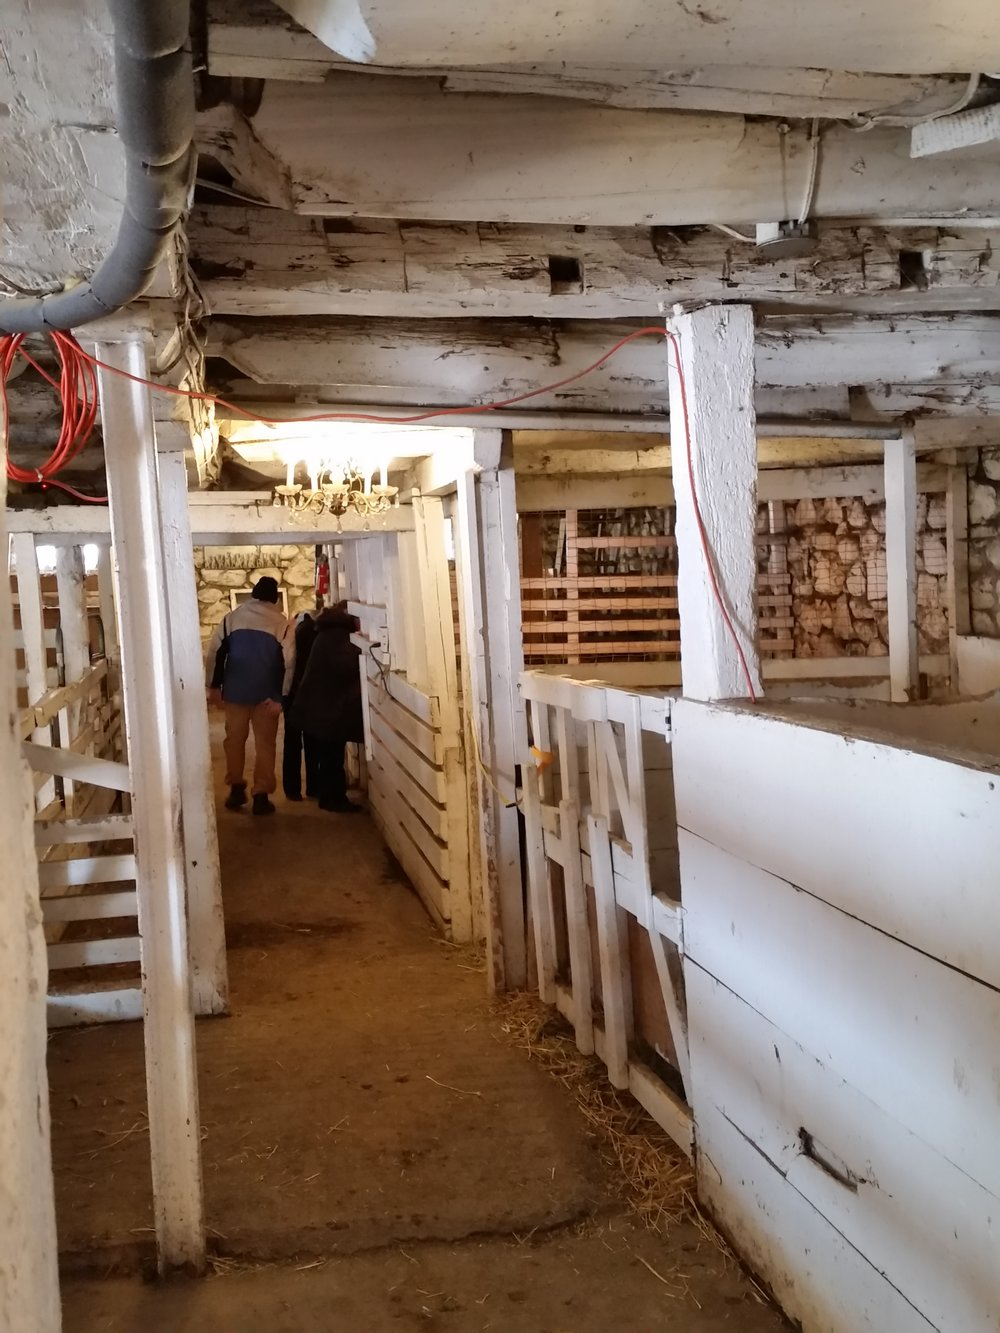 The Interior of the barn.